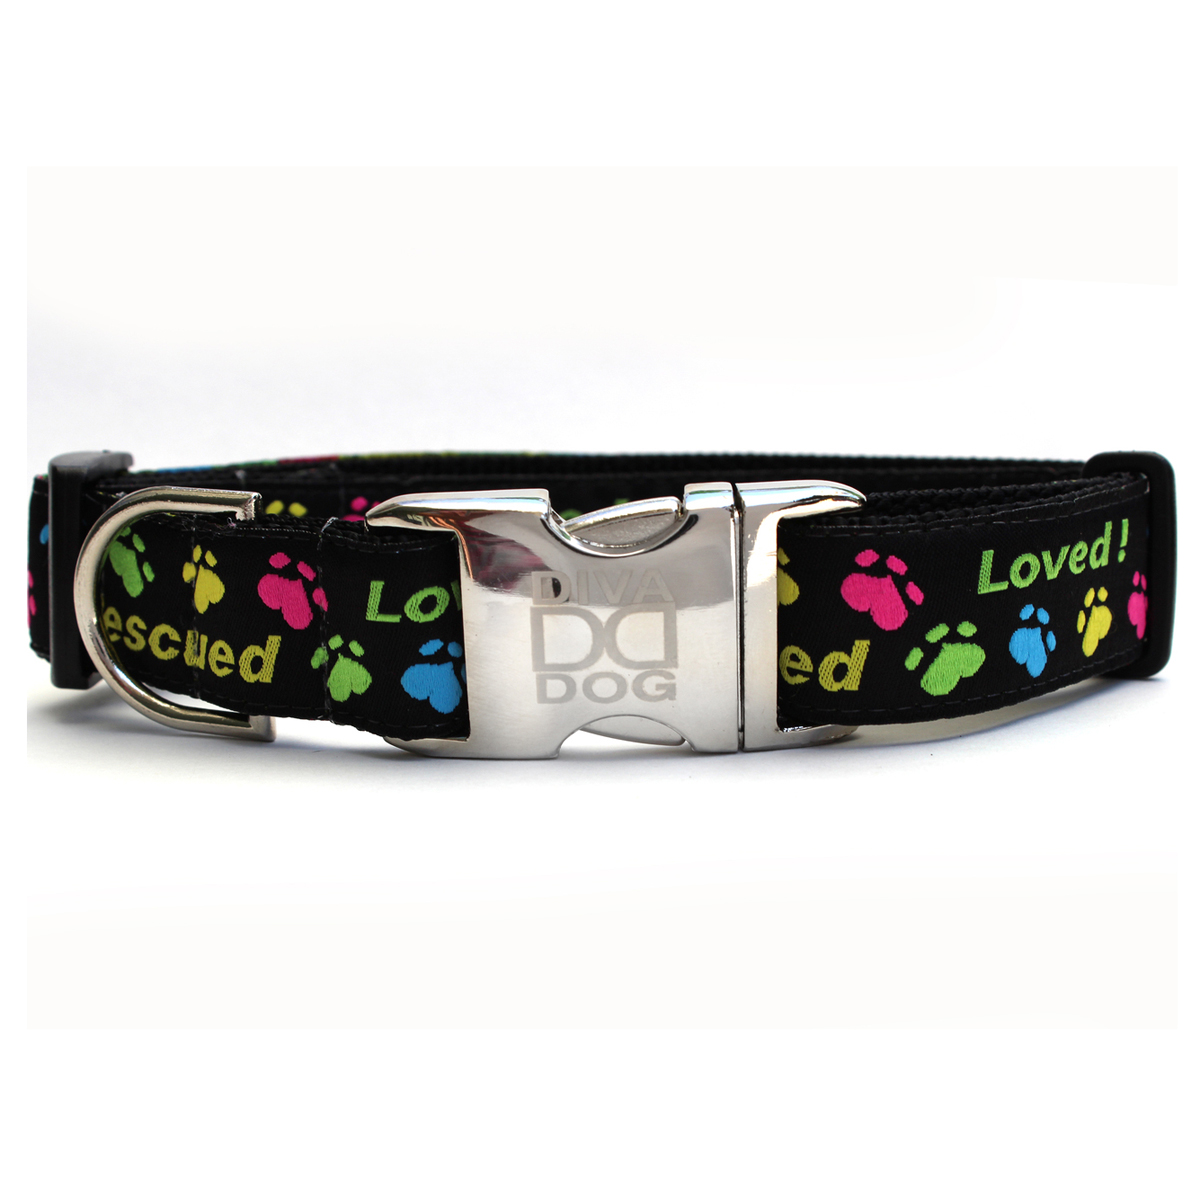 Rescue Me Dog Collar by Diva Dog